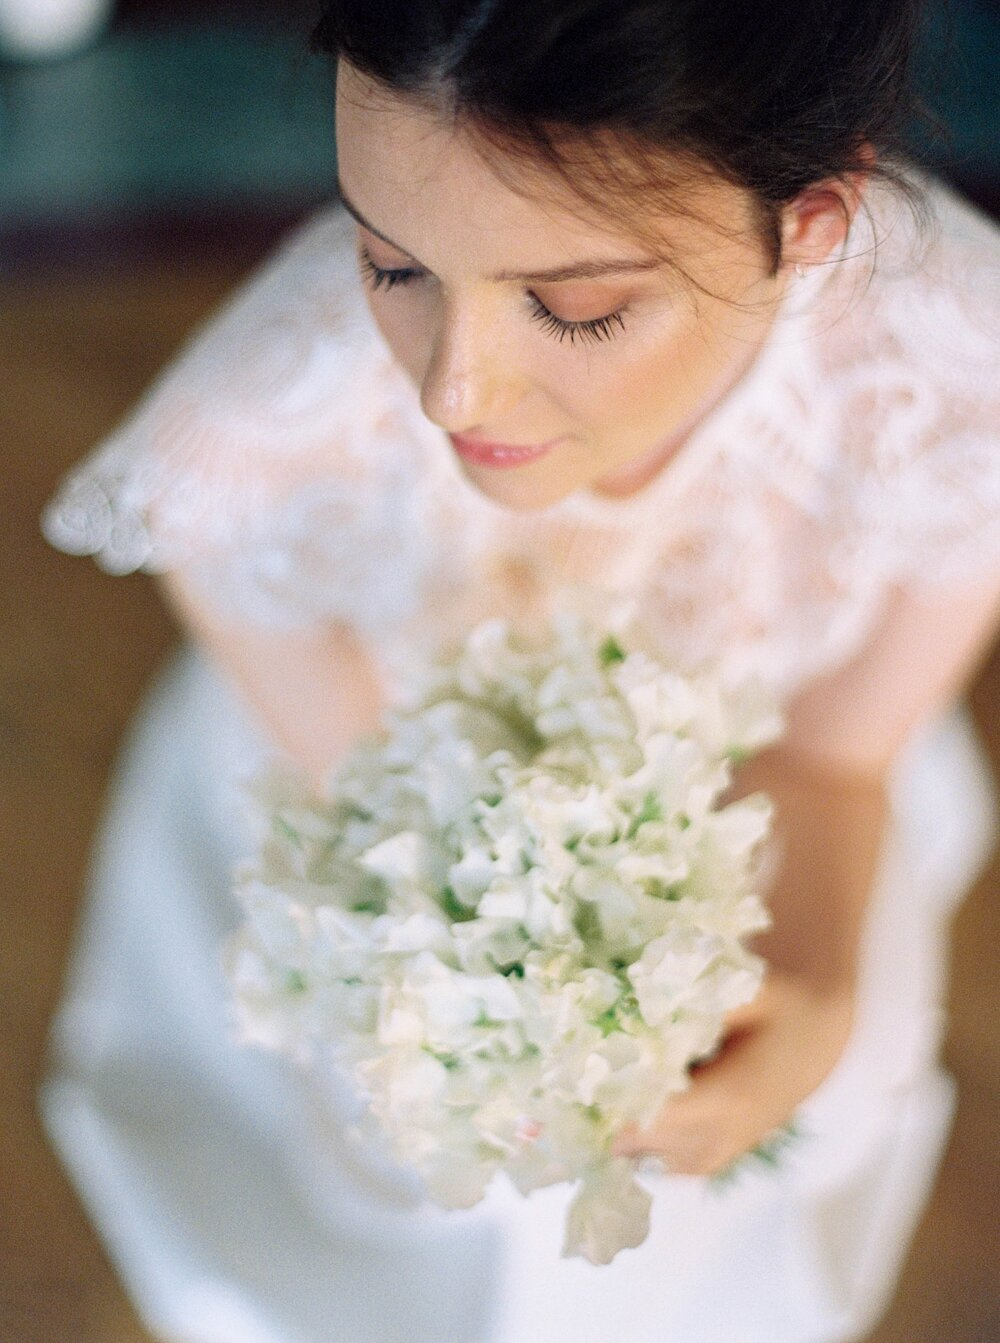 Overhead shot of Bride with a bouquet of white sweet peas in her hands